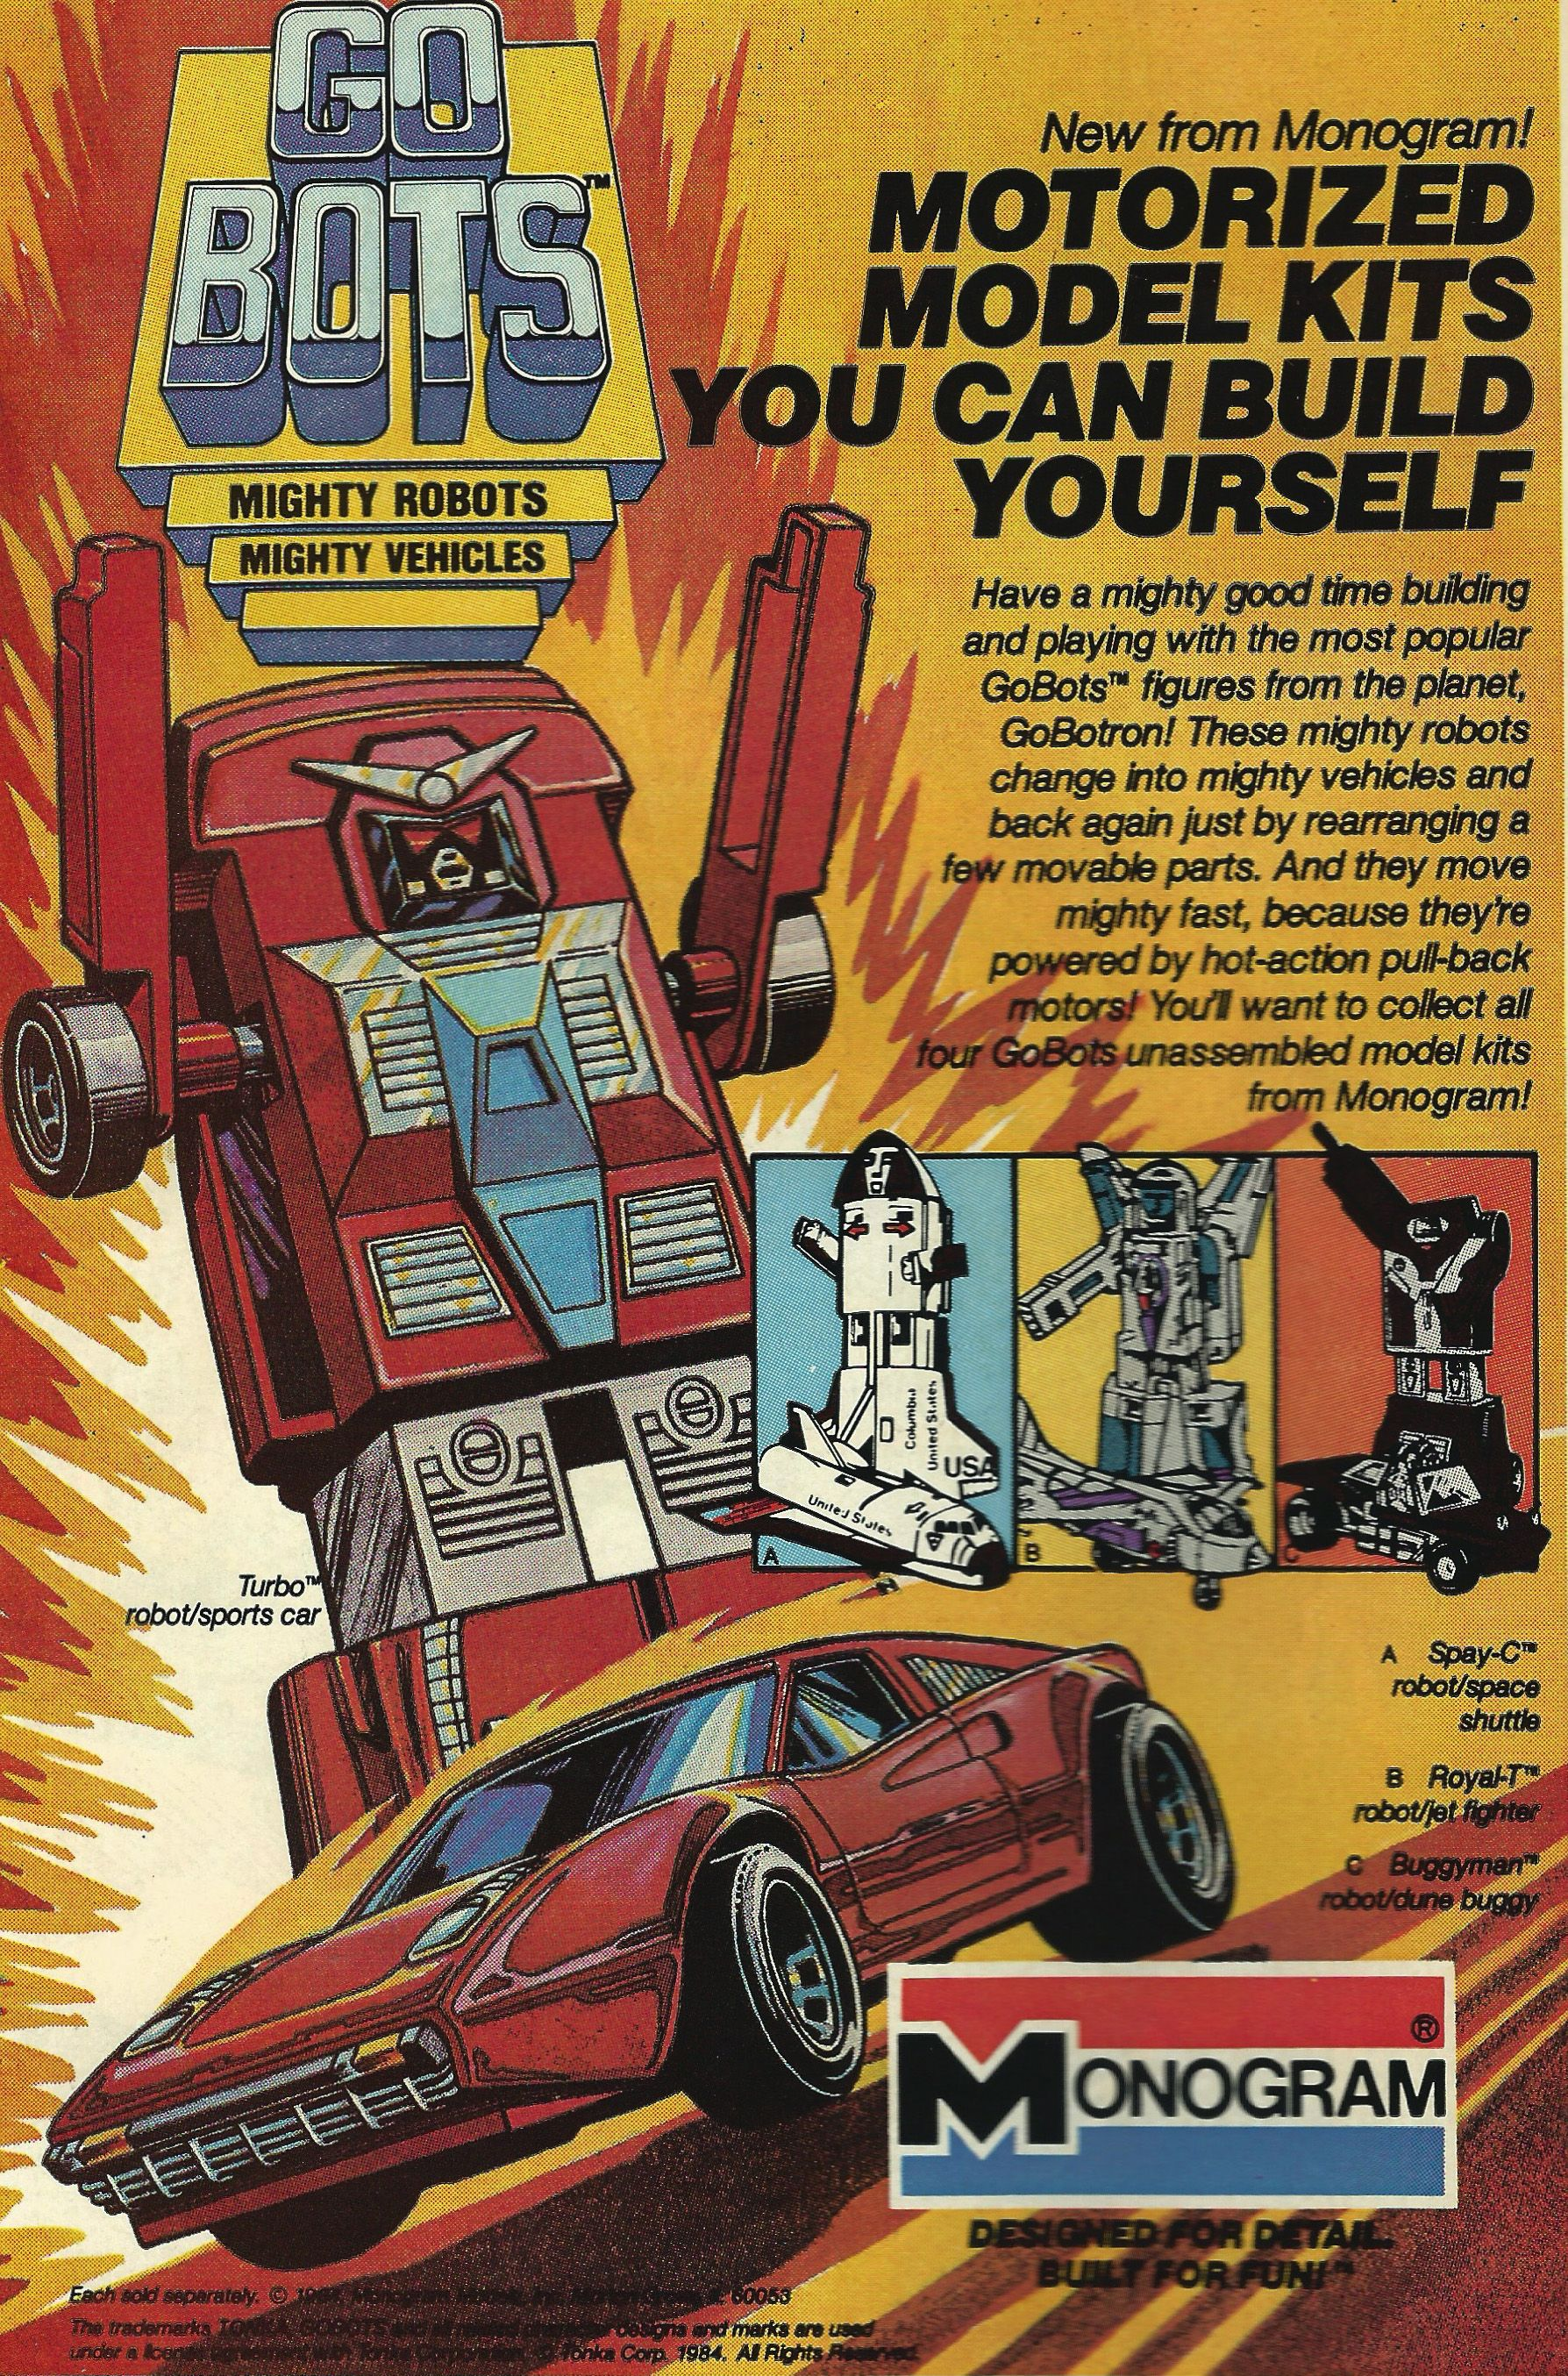 Monogram - Go Bots Advert from a comic